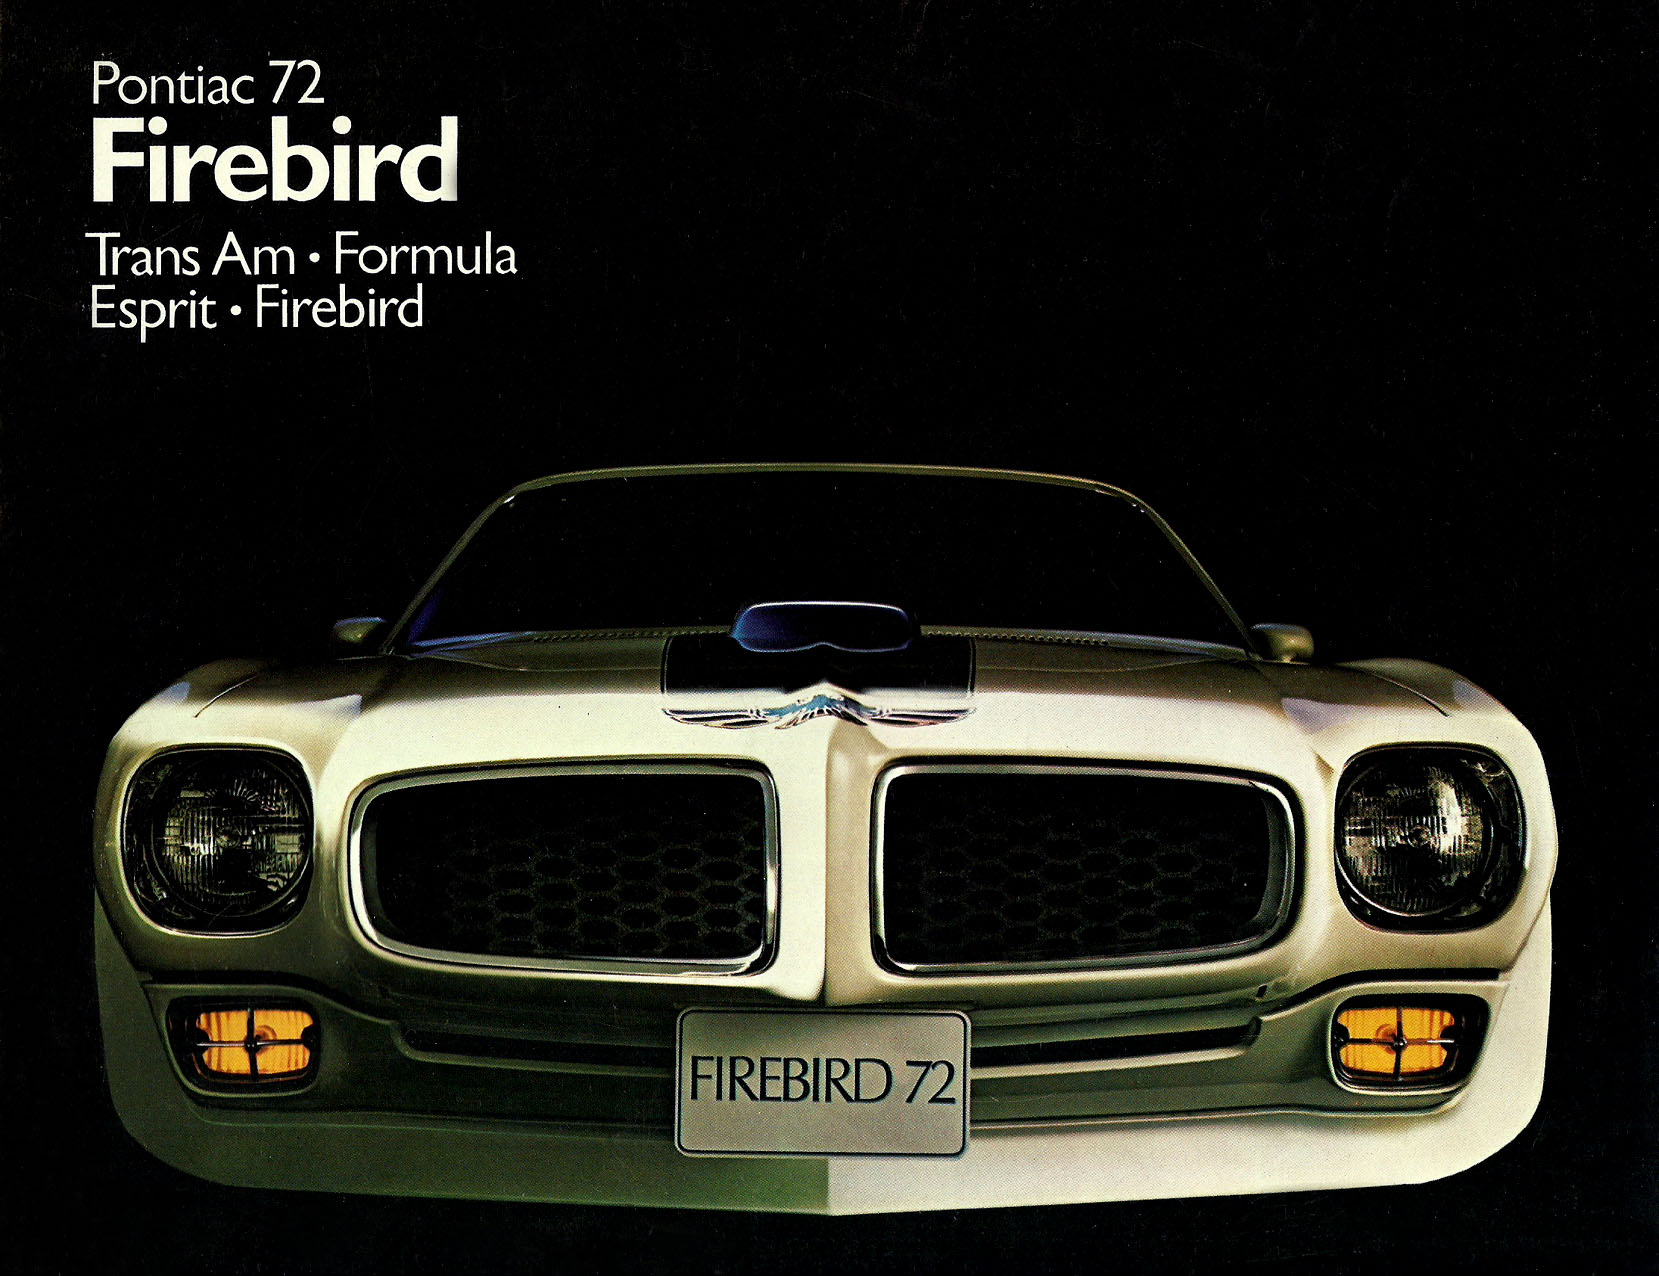 tunnelram.net_pontiac firebird and trans am 1970s (5).jpg